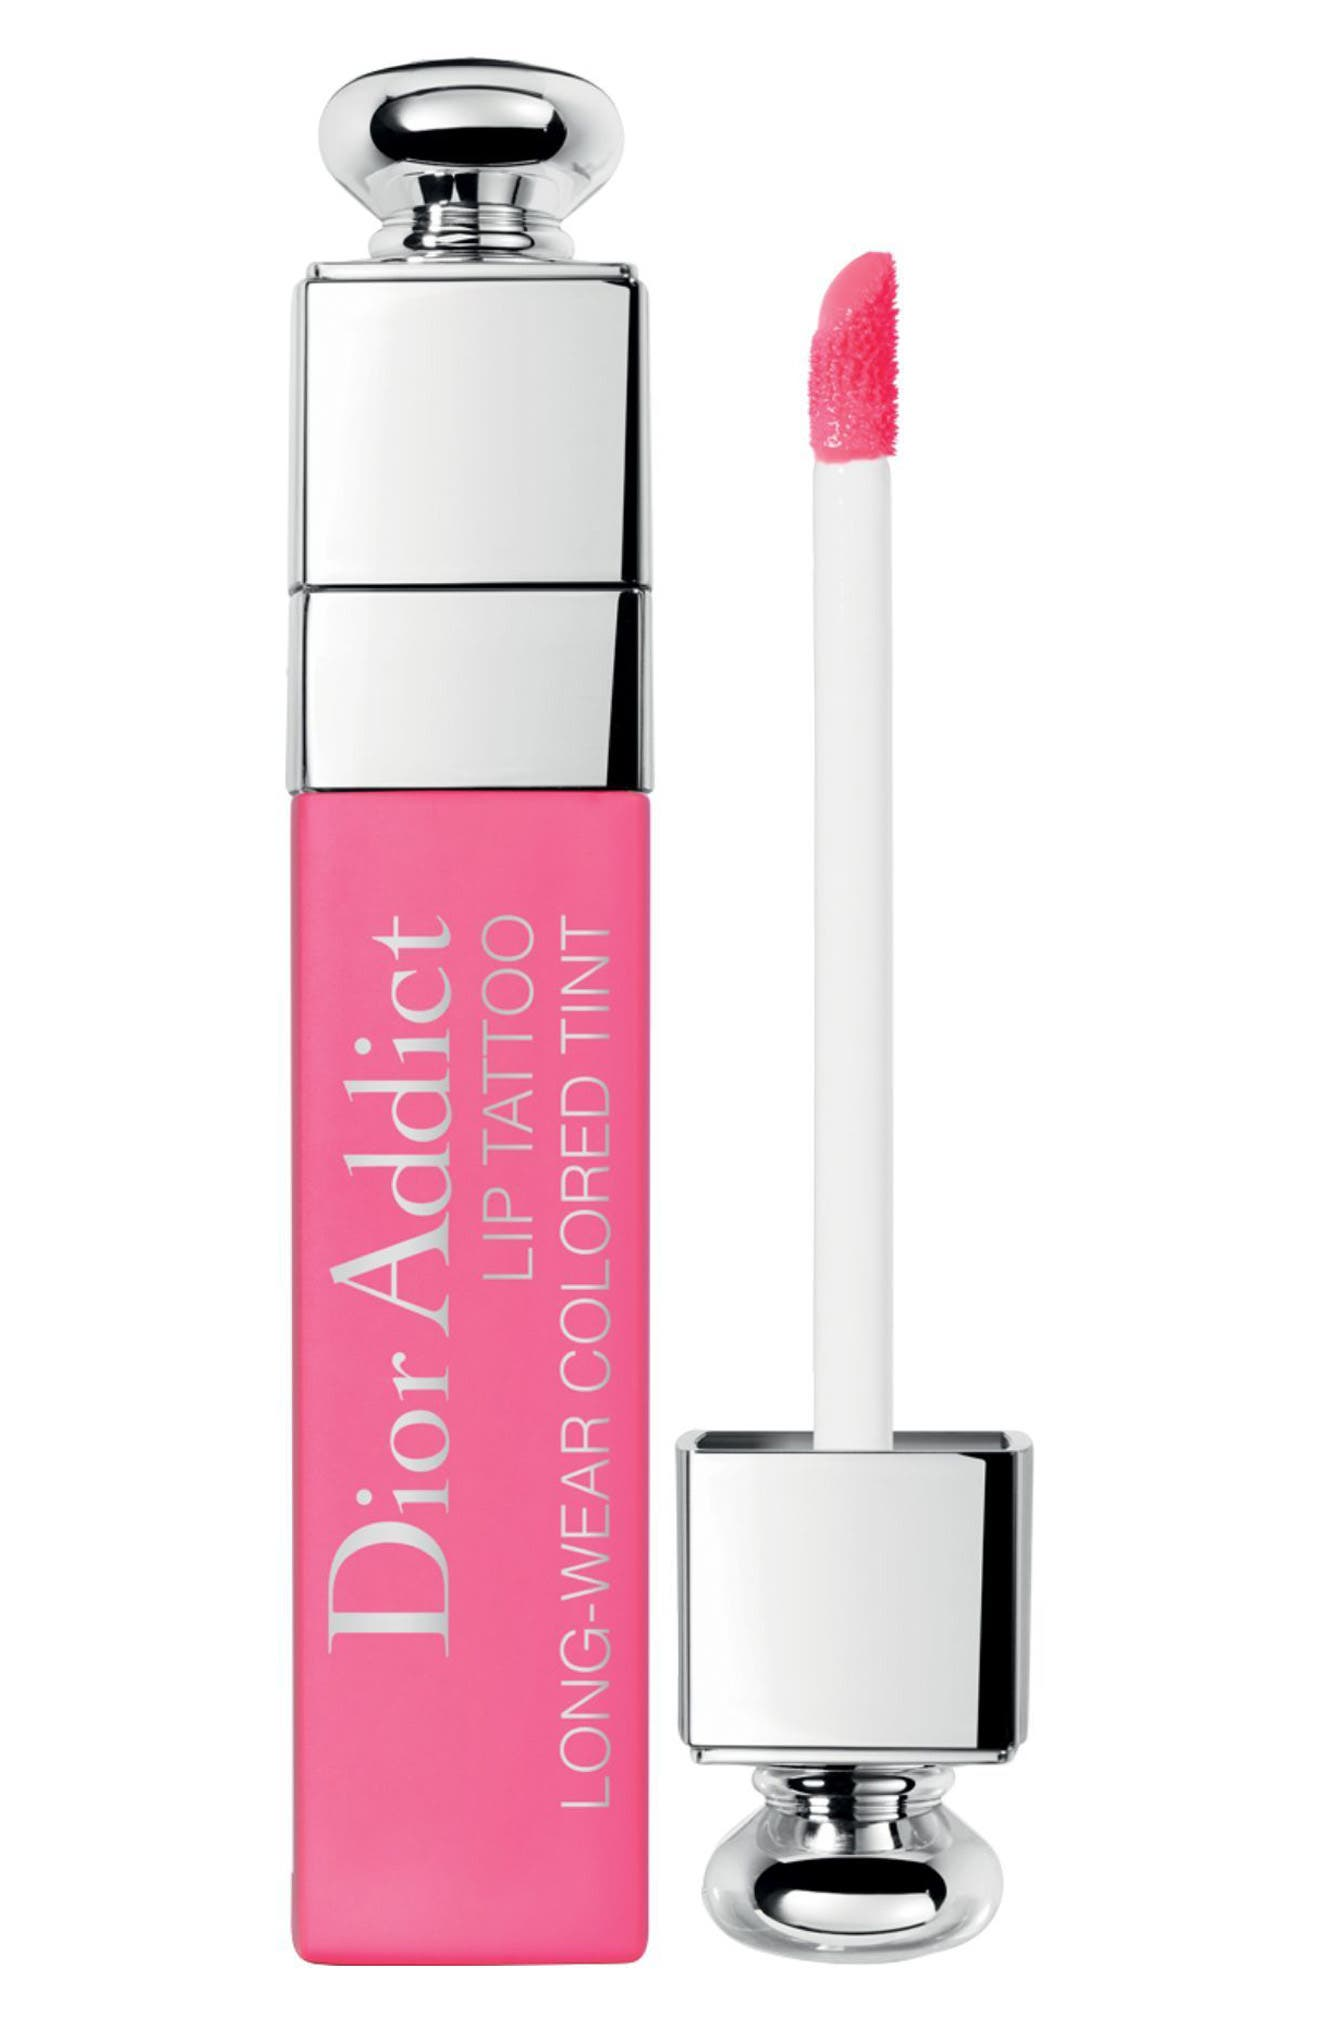 Alternate Image 1 Selected - Dior Addict Lip Tattoo Long-Wearing Color Tint